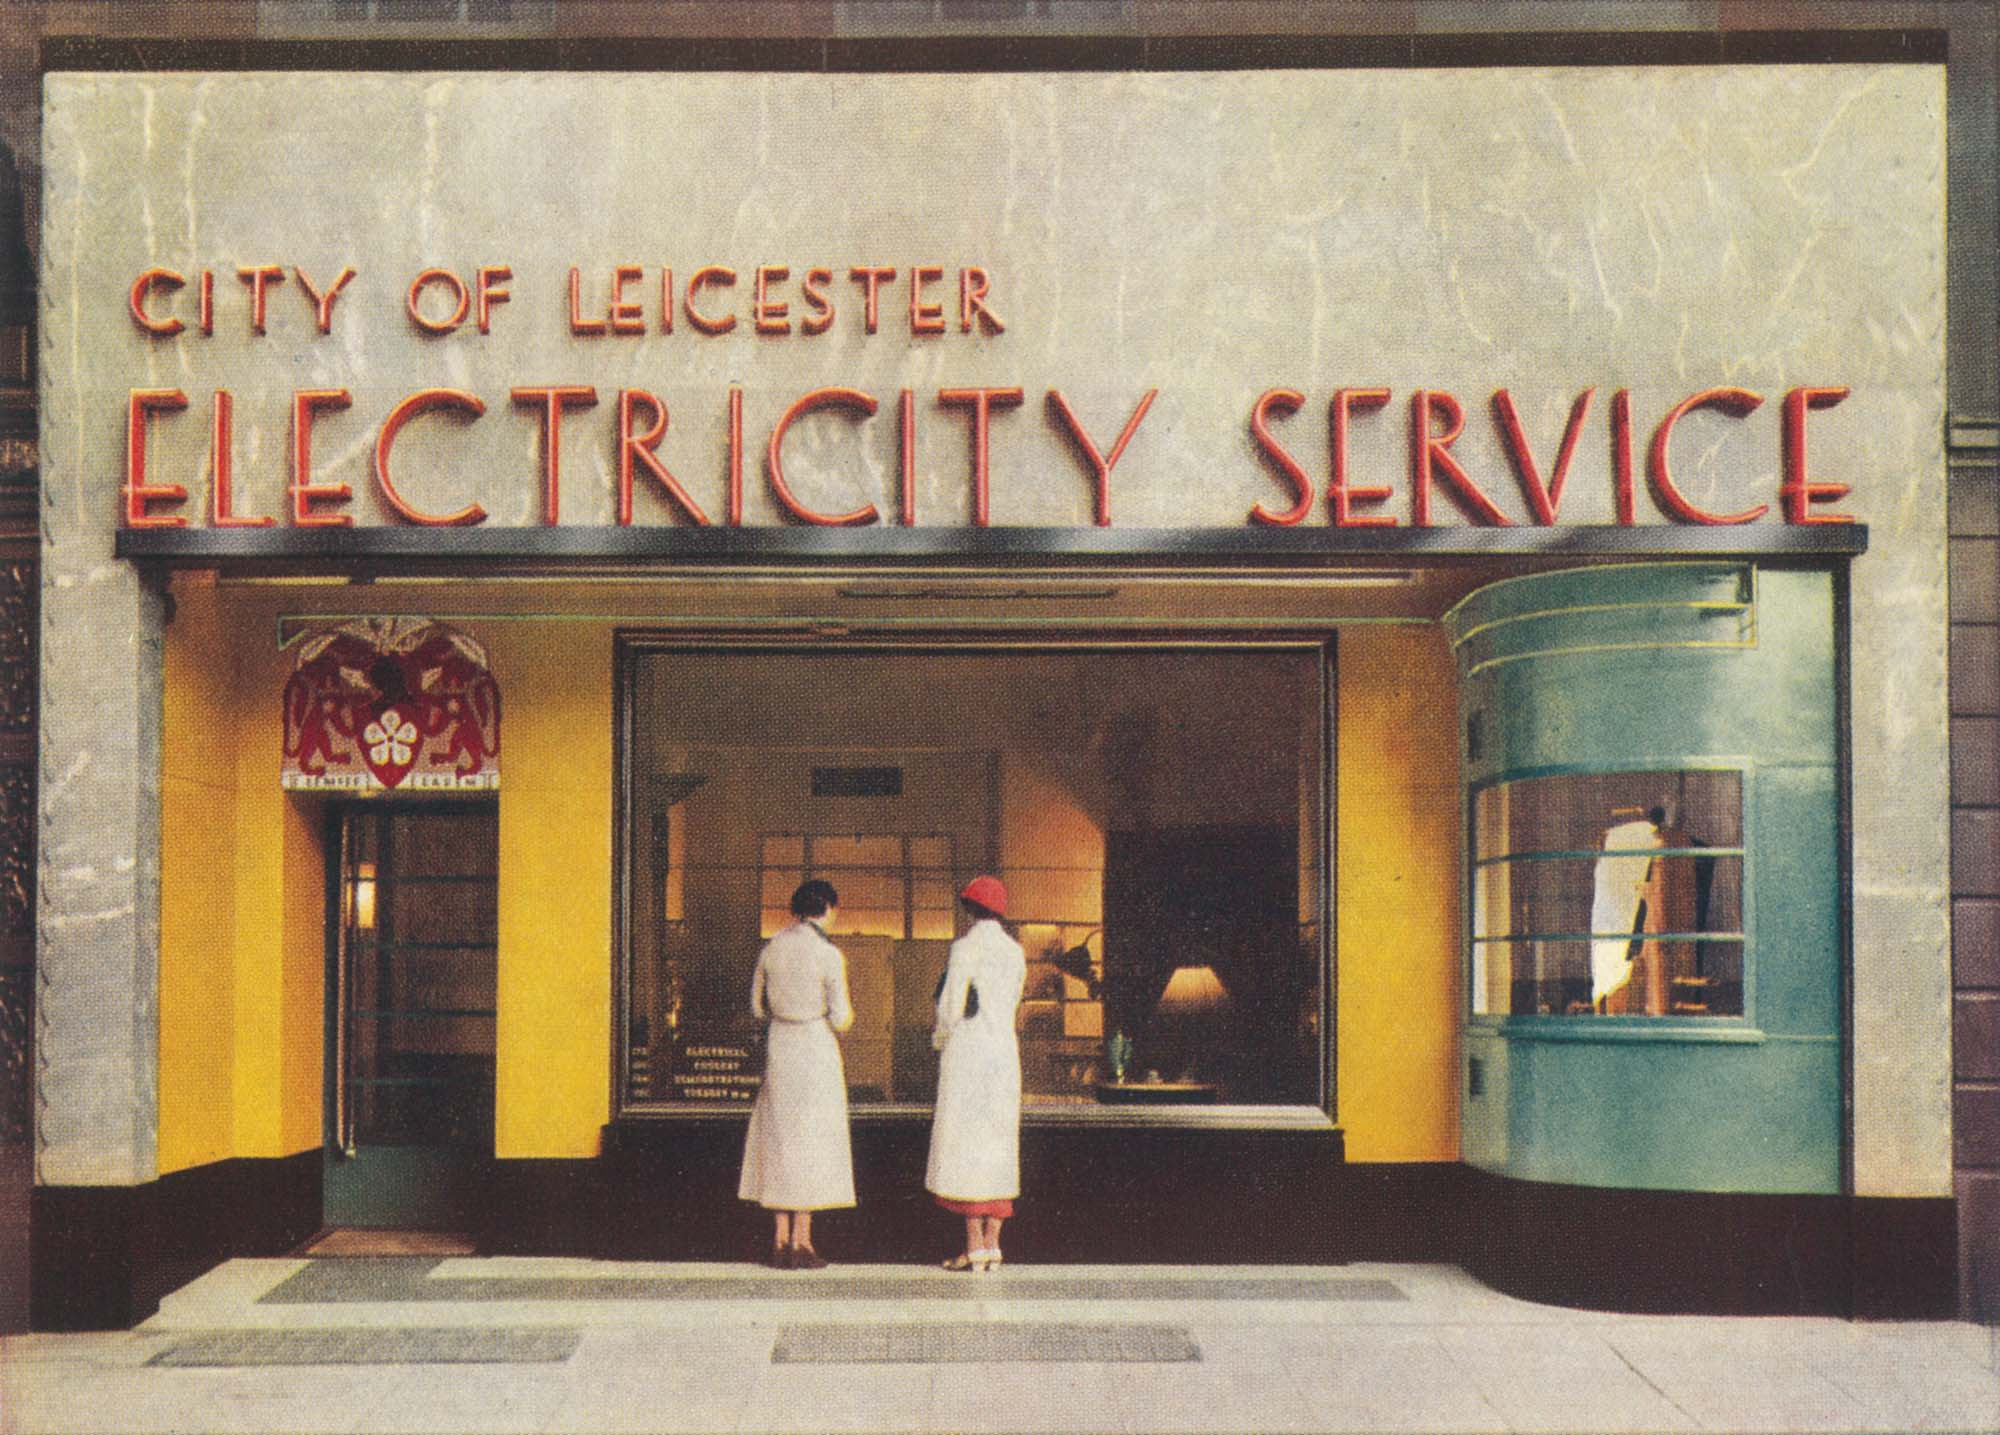 The entrance to the 'City of Leicester Electricity Service' -